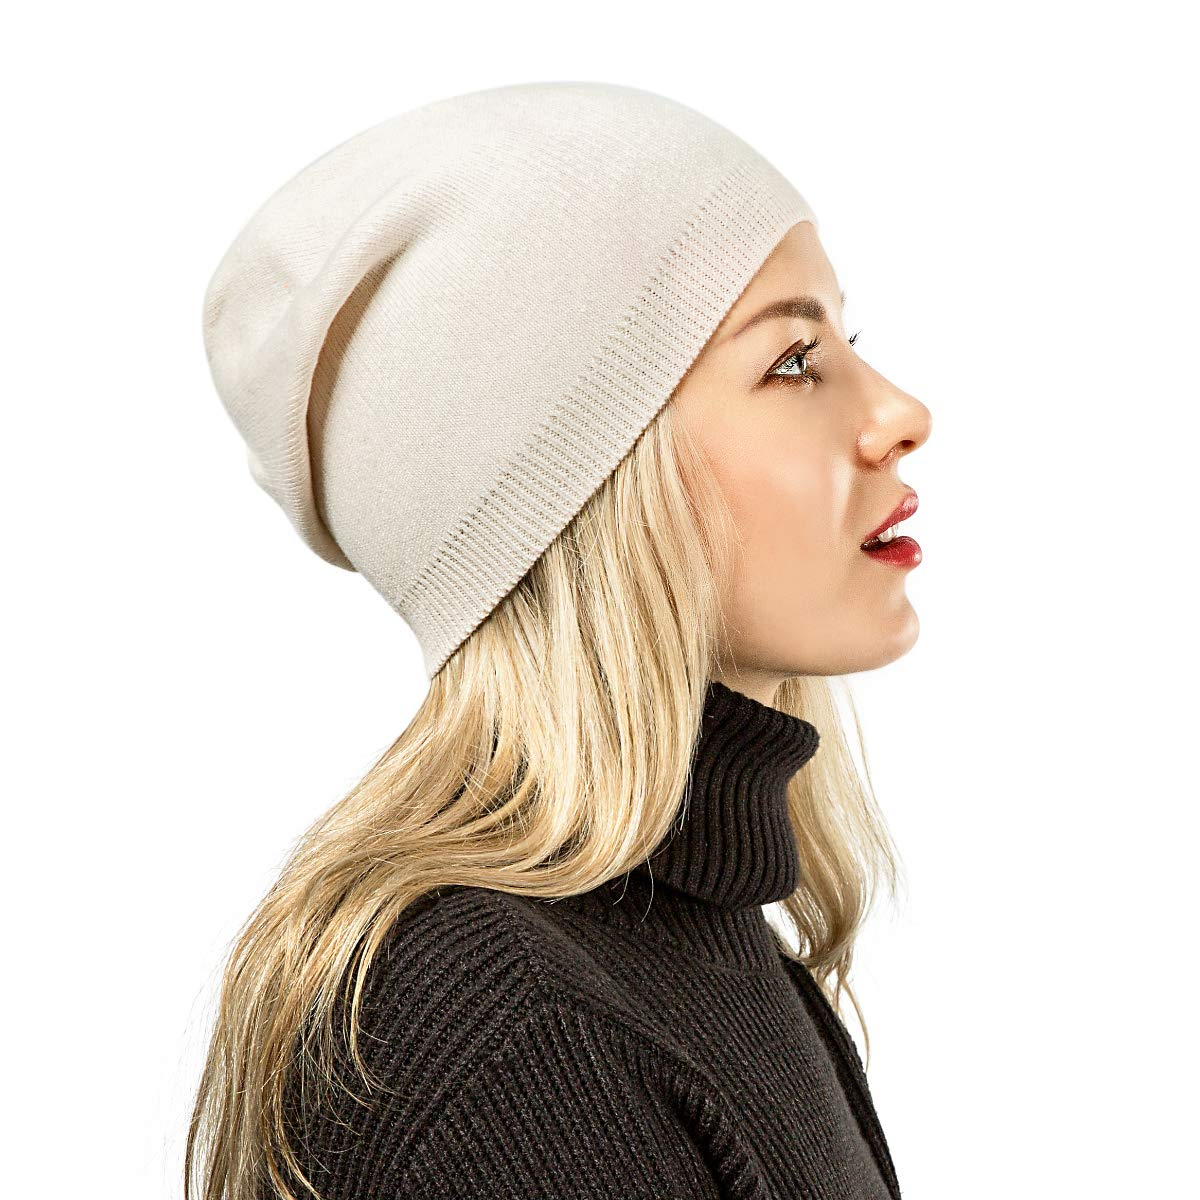 Nice Soft Wool Cap Is Stylish and Warm!